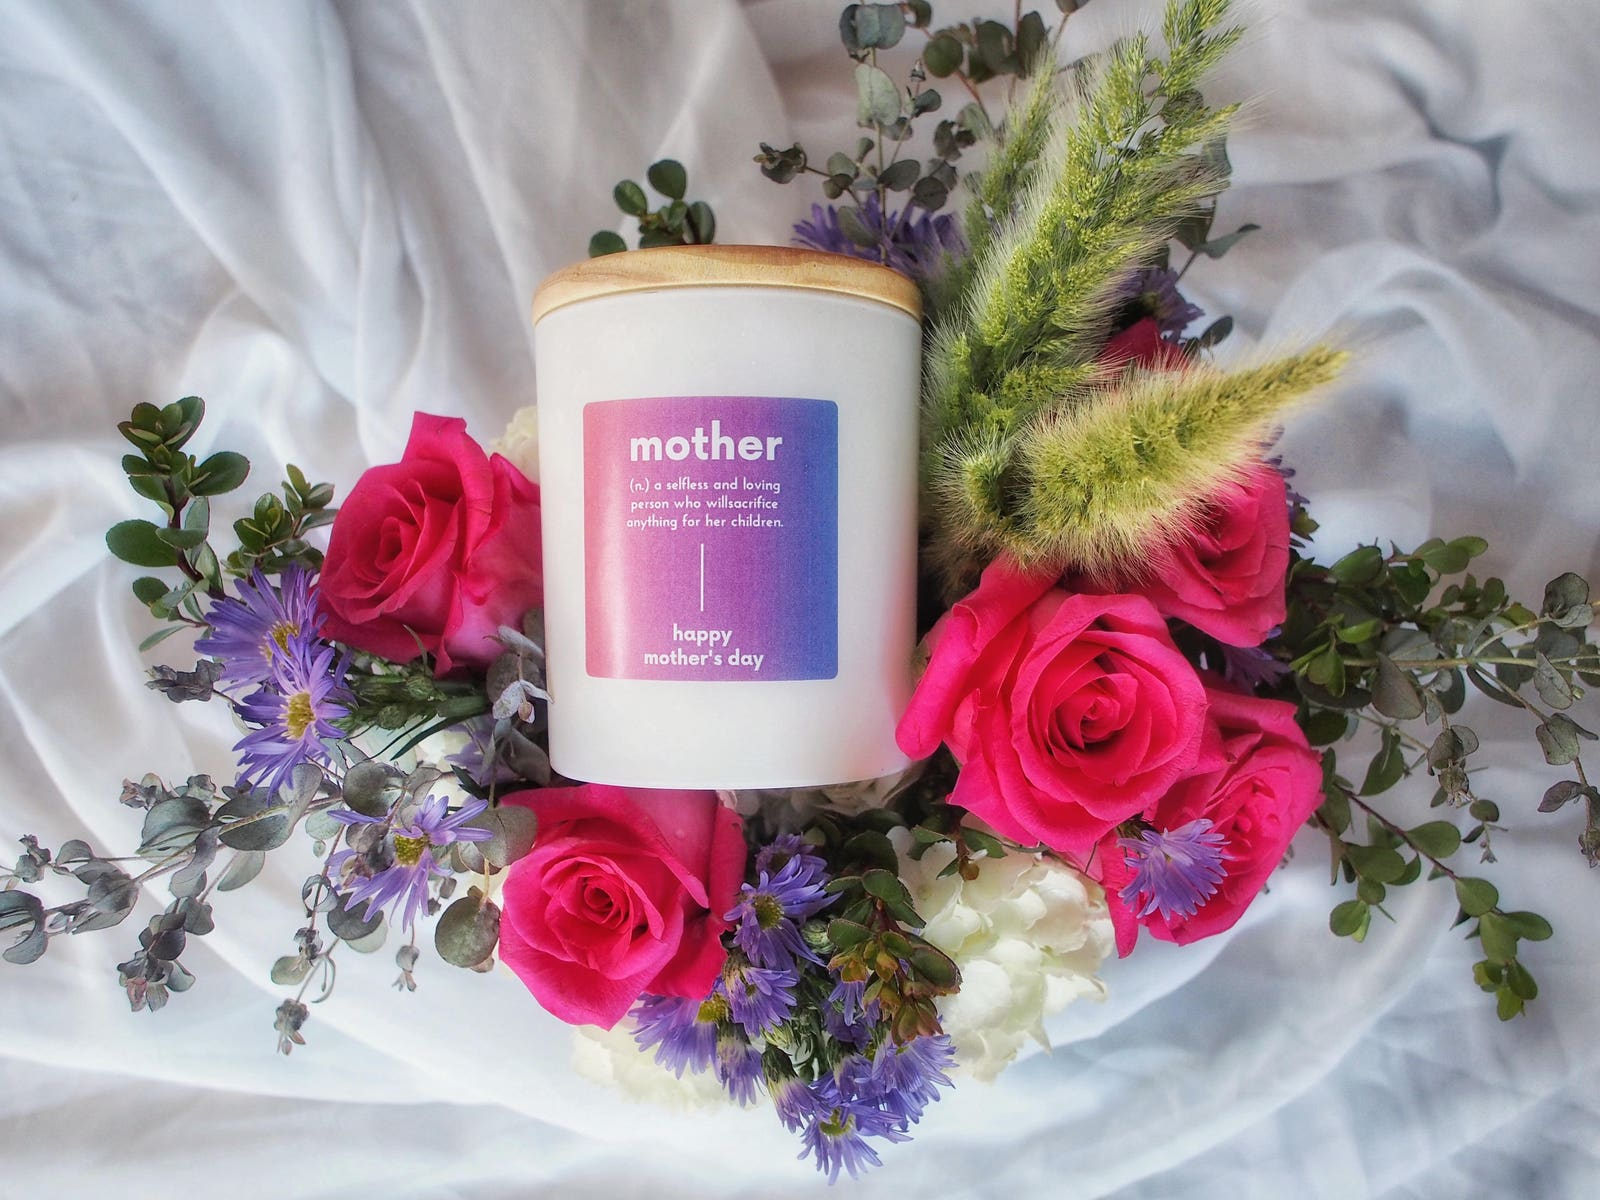 Candlemaking and Flower Arranging Workshop at Banter & Bliss Candle Co.